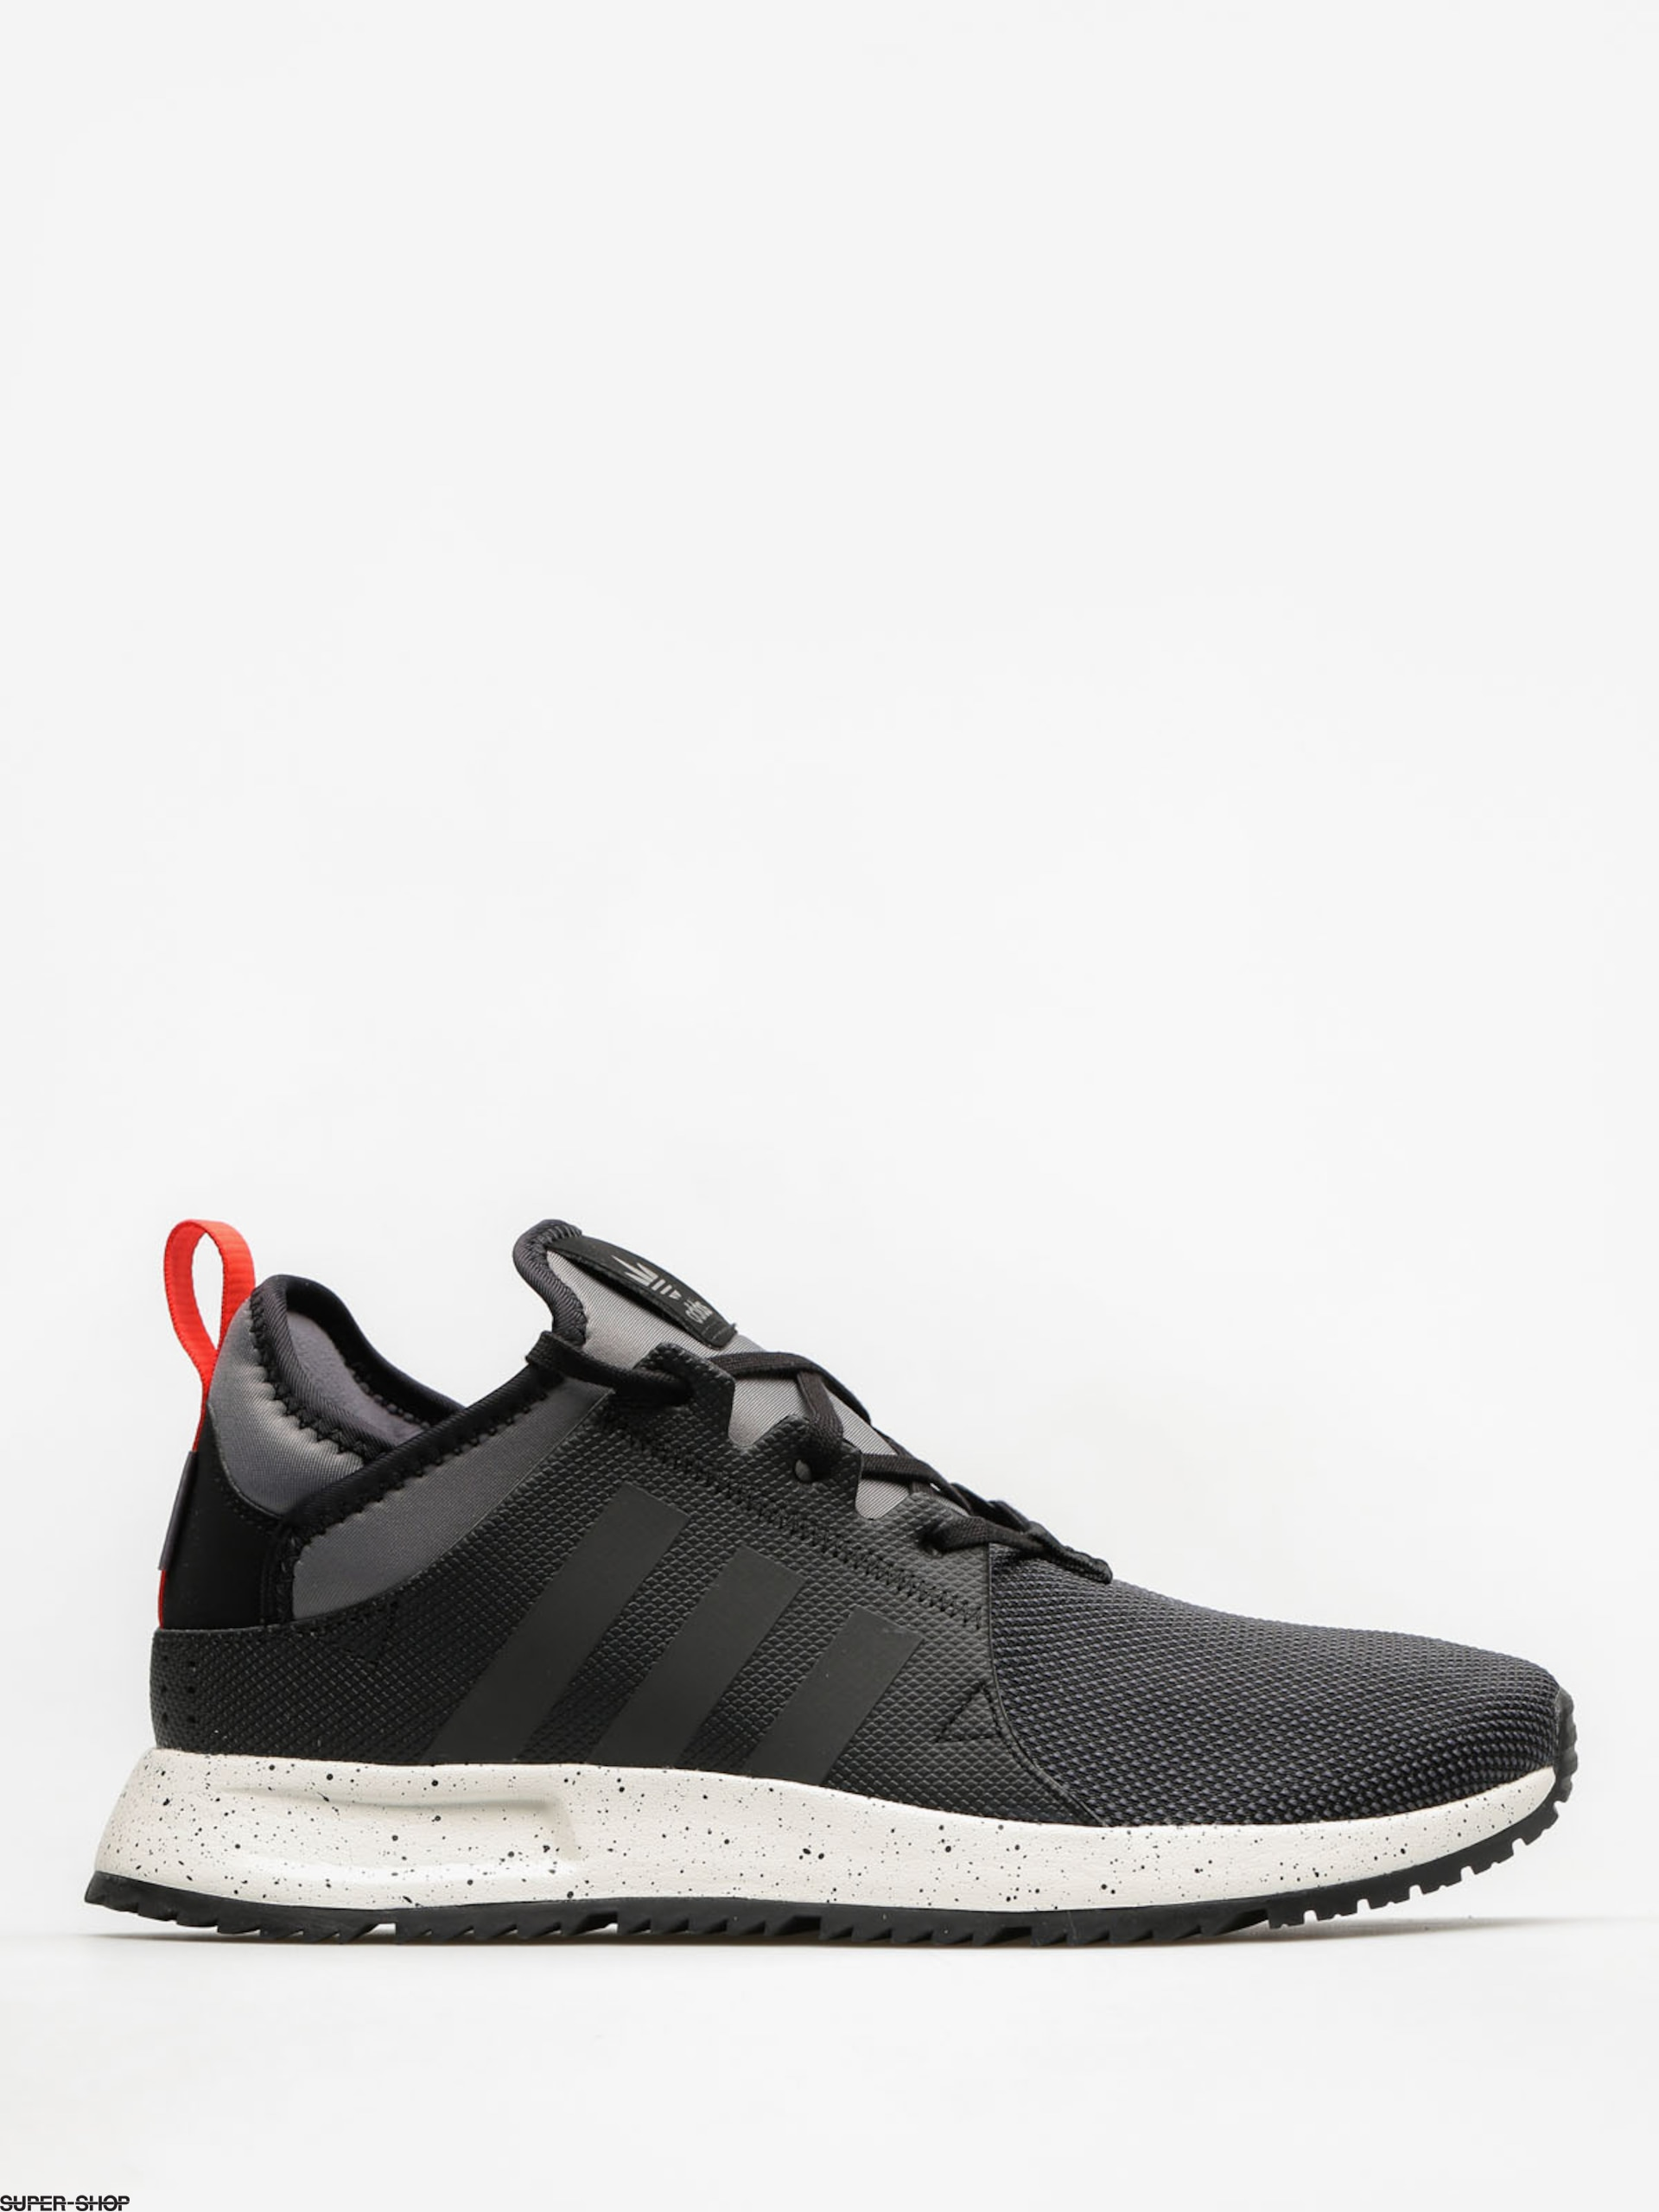 adidas Shoes X Plr Sneakerboot (cblack/cblack/grefiv)